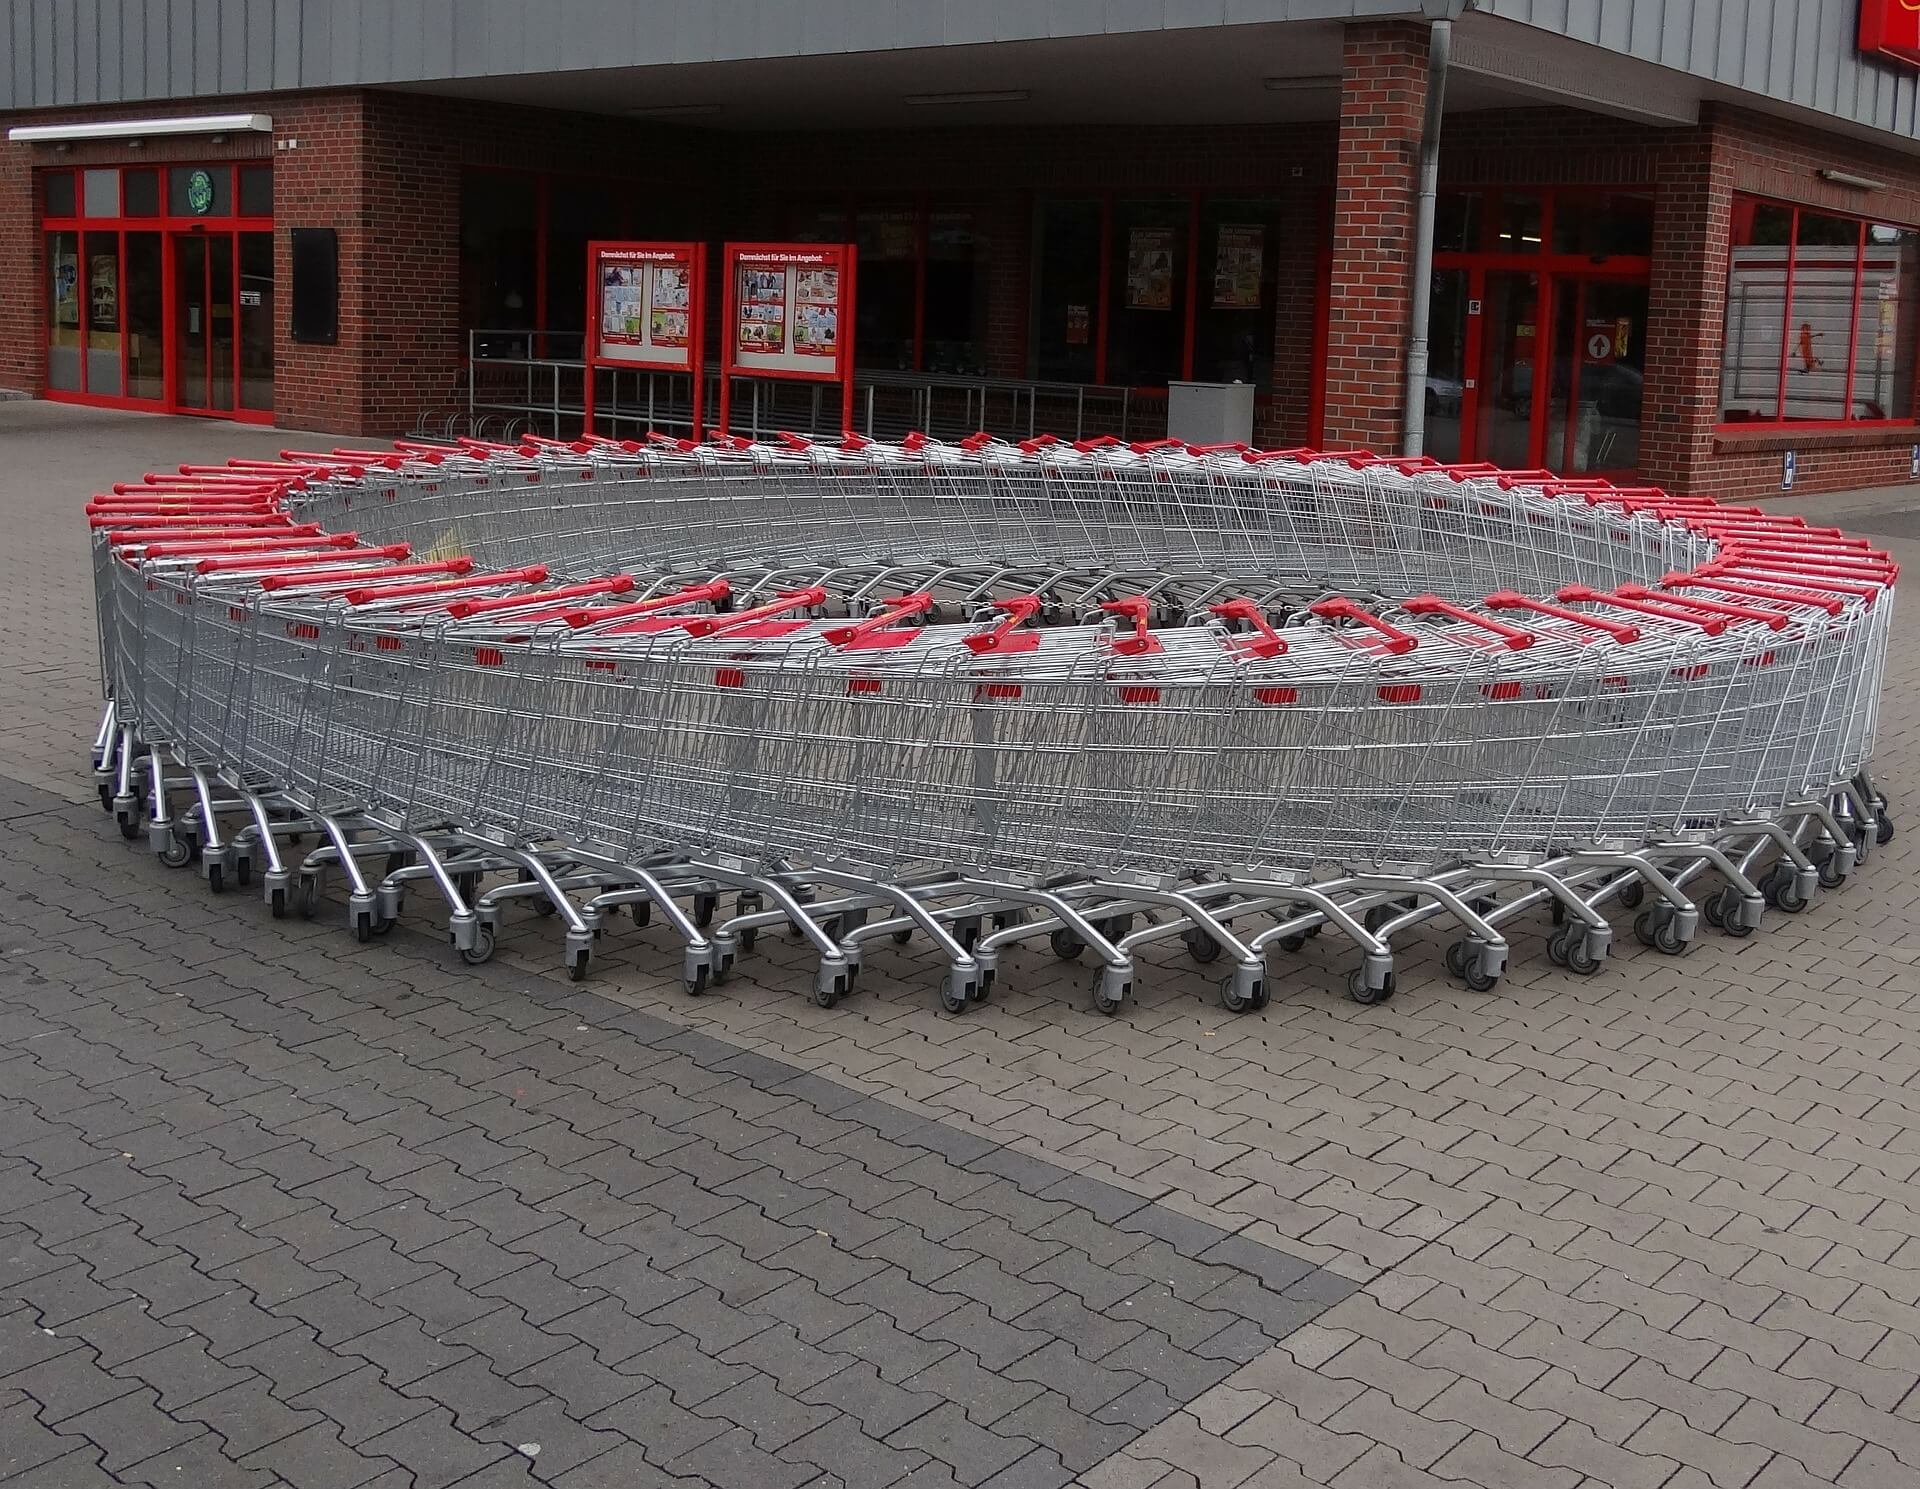 circle of red handled shopping baskets